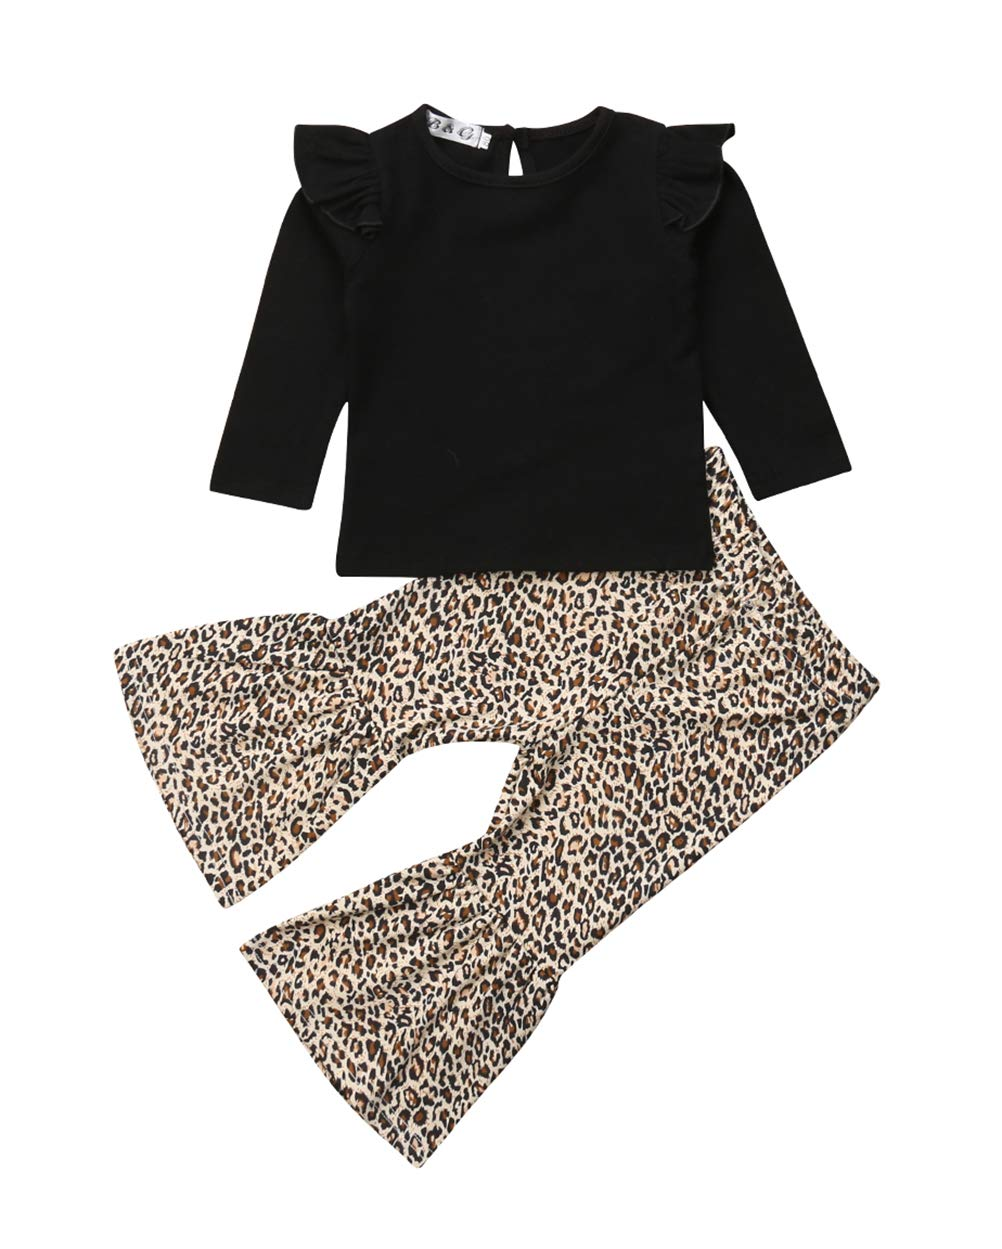 VISGOGO Toddler Baby Kid Girl Outfit Long Sleeve T-Shirt Top+Leopard Flared Pants Clothes Set